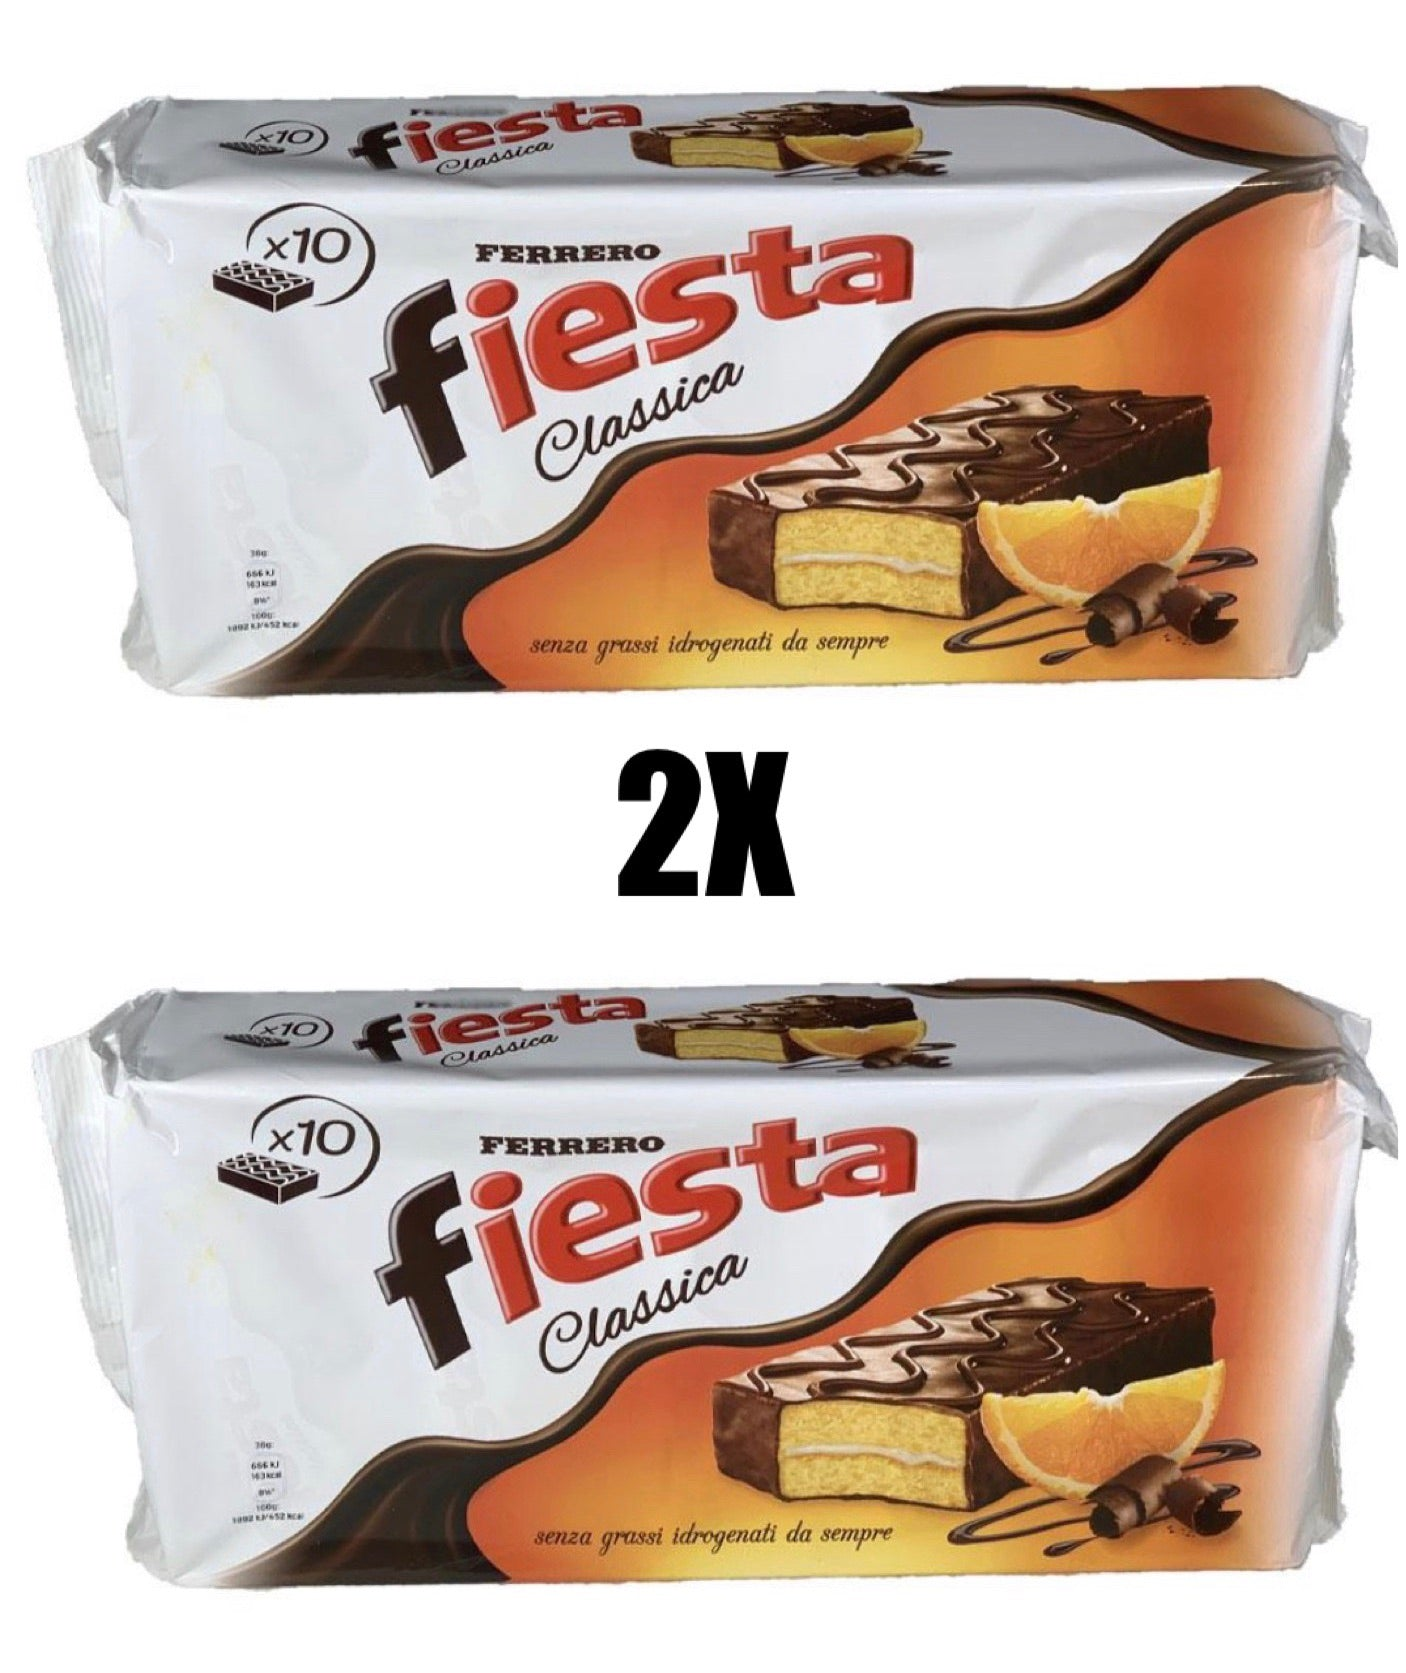 Bundle 2 packs of Fiesta Ferrero (20 snacks)